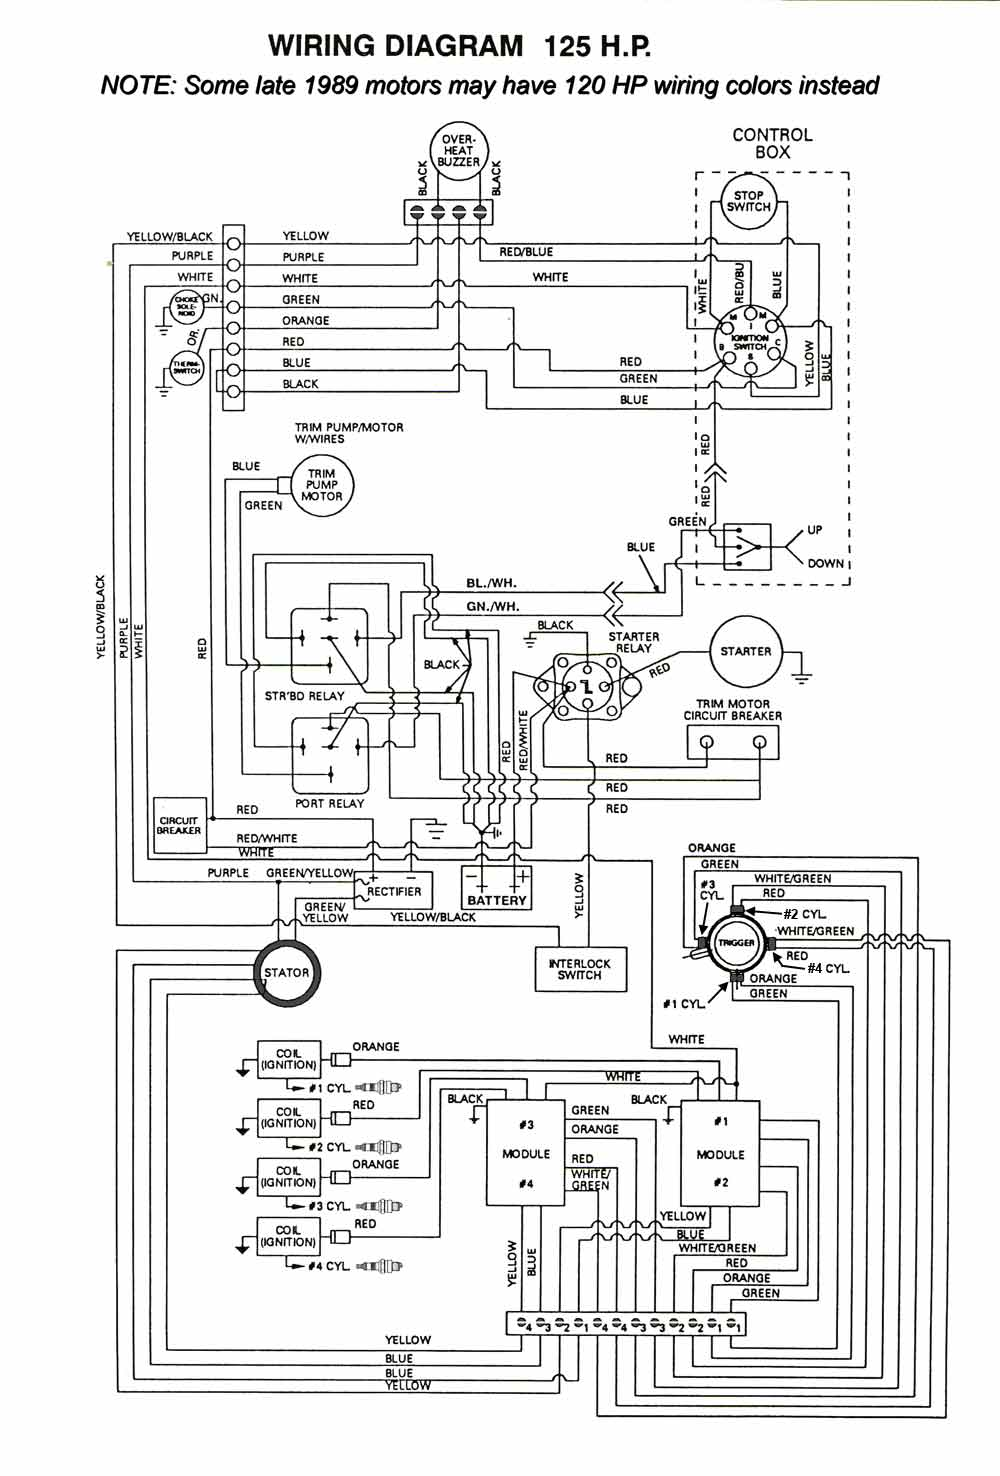 Chrysler Outboard Wiring Diagrams Mastertech Marine 125Hp Mercury Outboard  Motor Wiring Diagram Small Outboard Boat Motor Wiring Diagrams